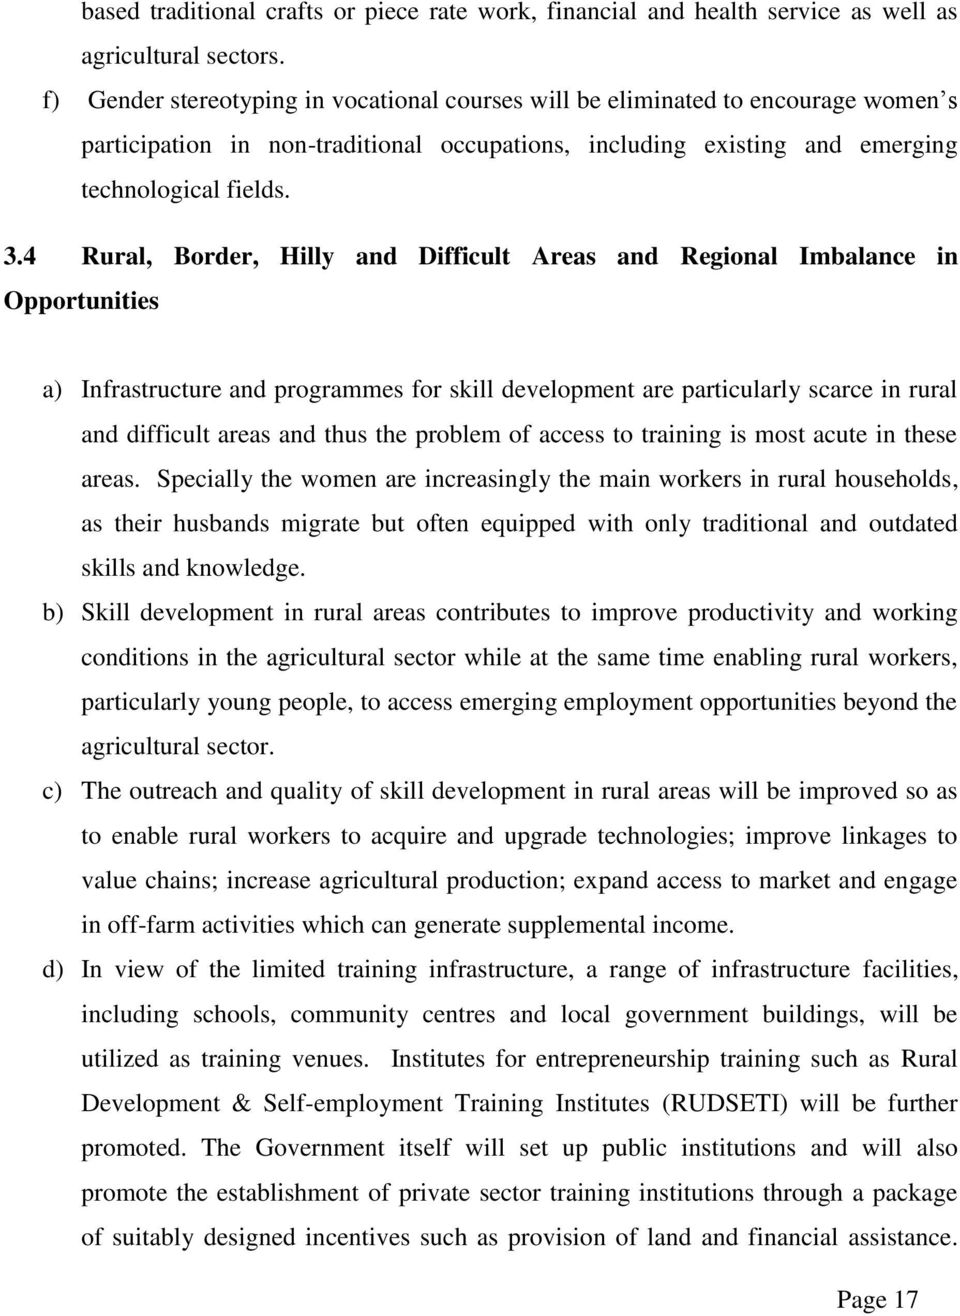 4 Rural, Border, Hilly and Difficult Areas and Regional Imbalance in Opportunities a) Infrastructure and programmes for skill development are particularly scarce in rural and difficult areas and thus